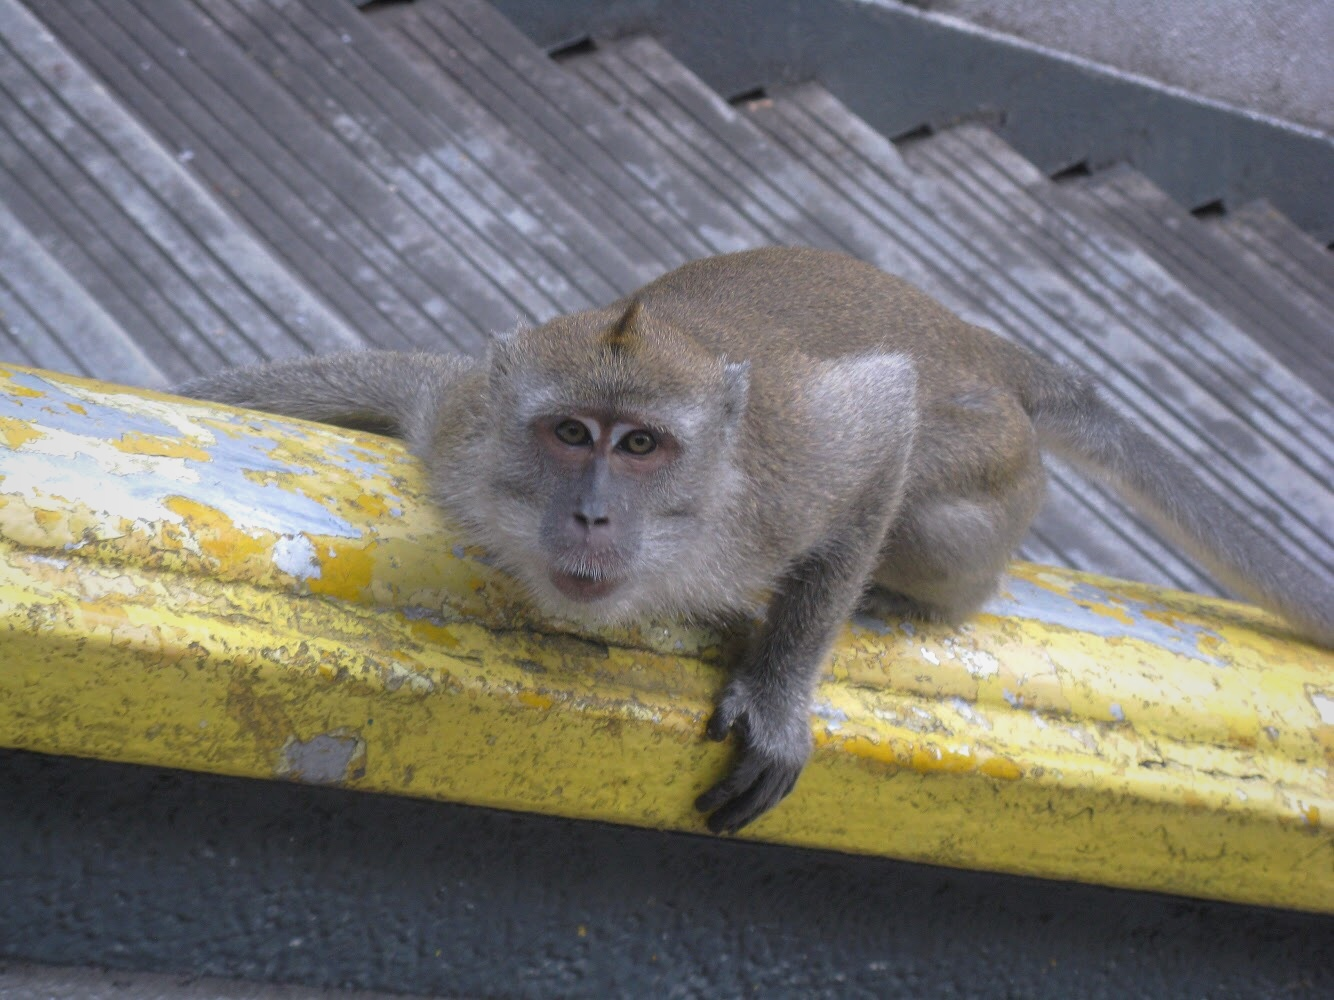 Wild macaque monkeys roam the grounds of the Batu Caves